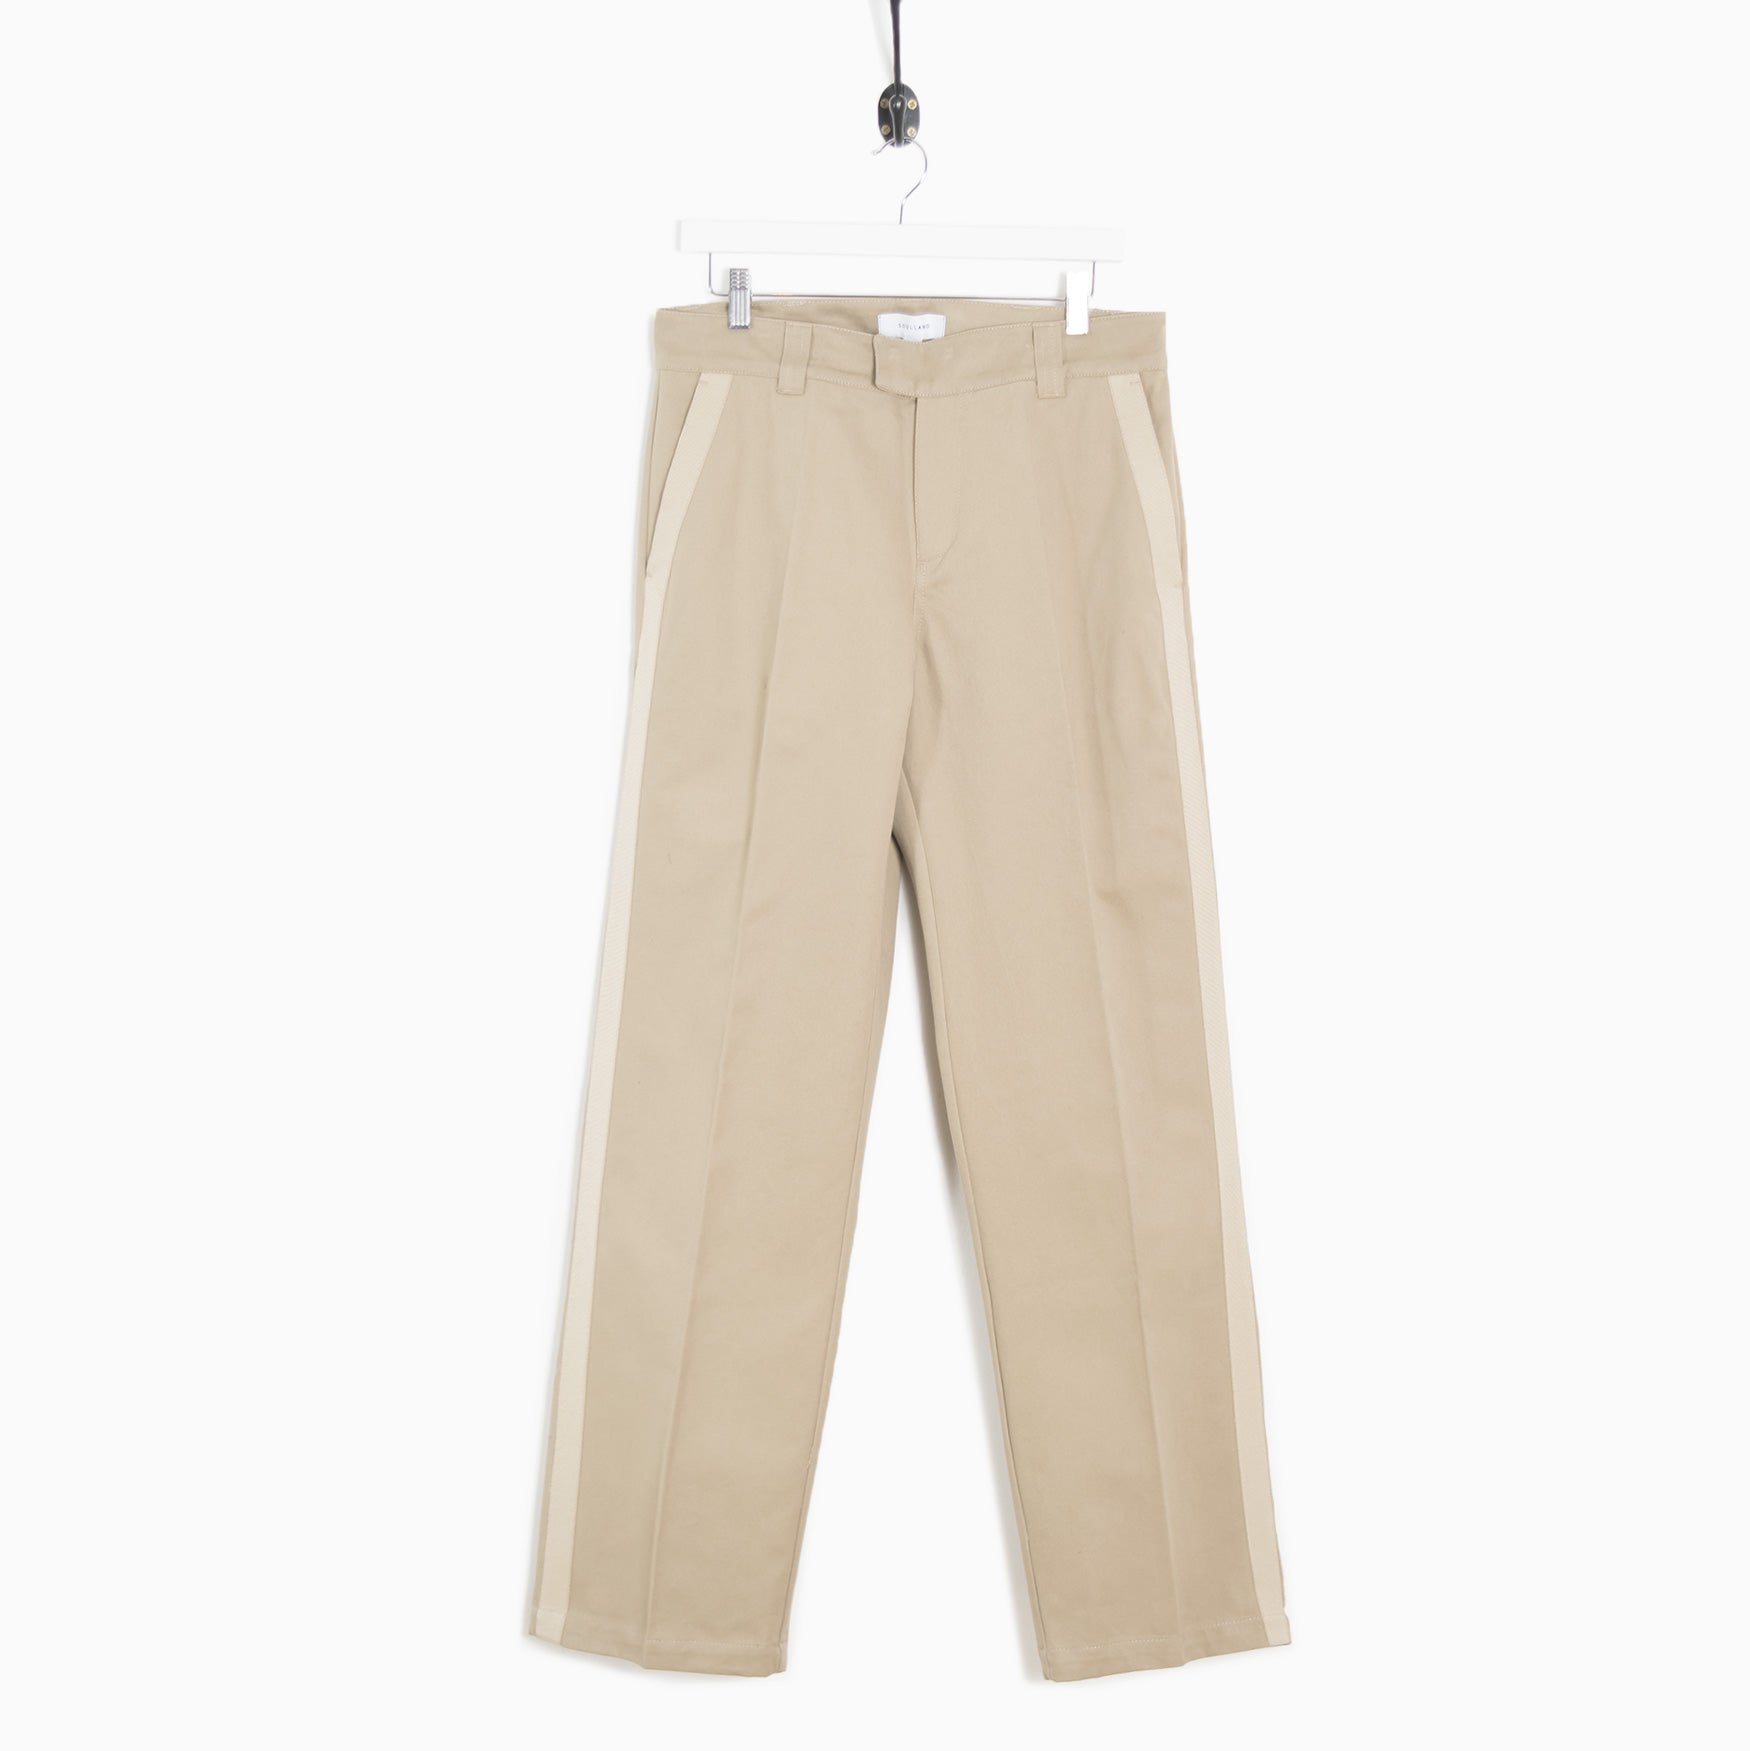 f398c5ade73 Soulland Greco Heavyweight Cotton Trouser - Light Beige